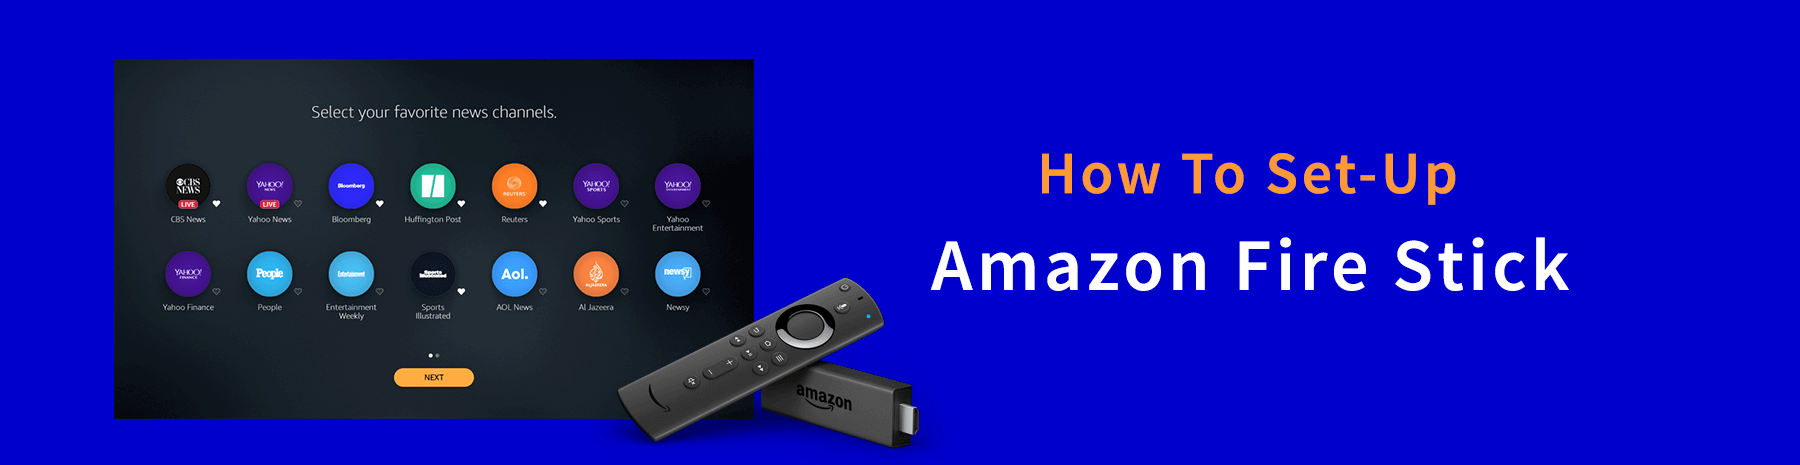 How To Set Up Amazon Fire Stick